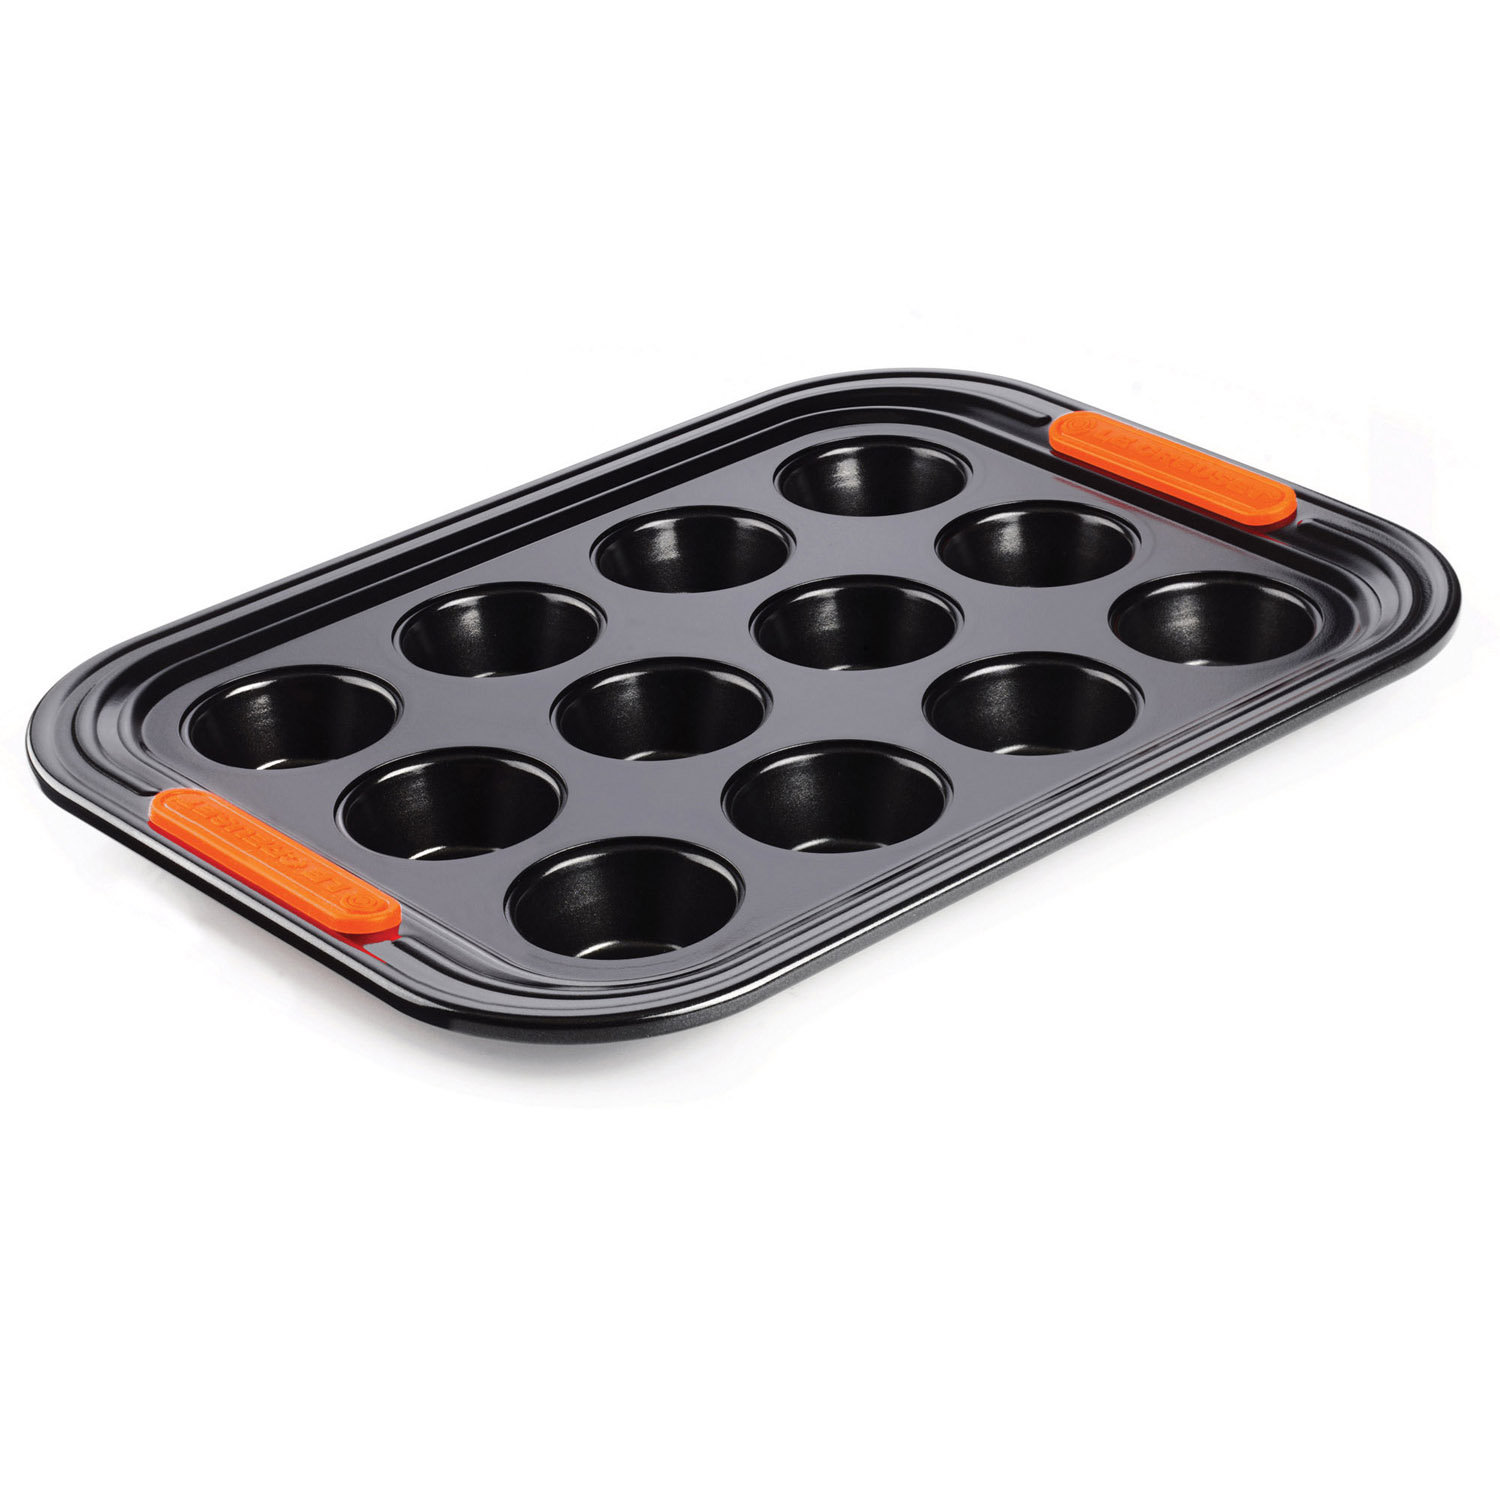 Image of Le Creuset 12 Cup Muffin Tray